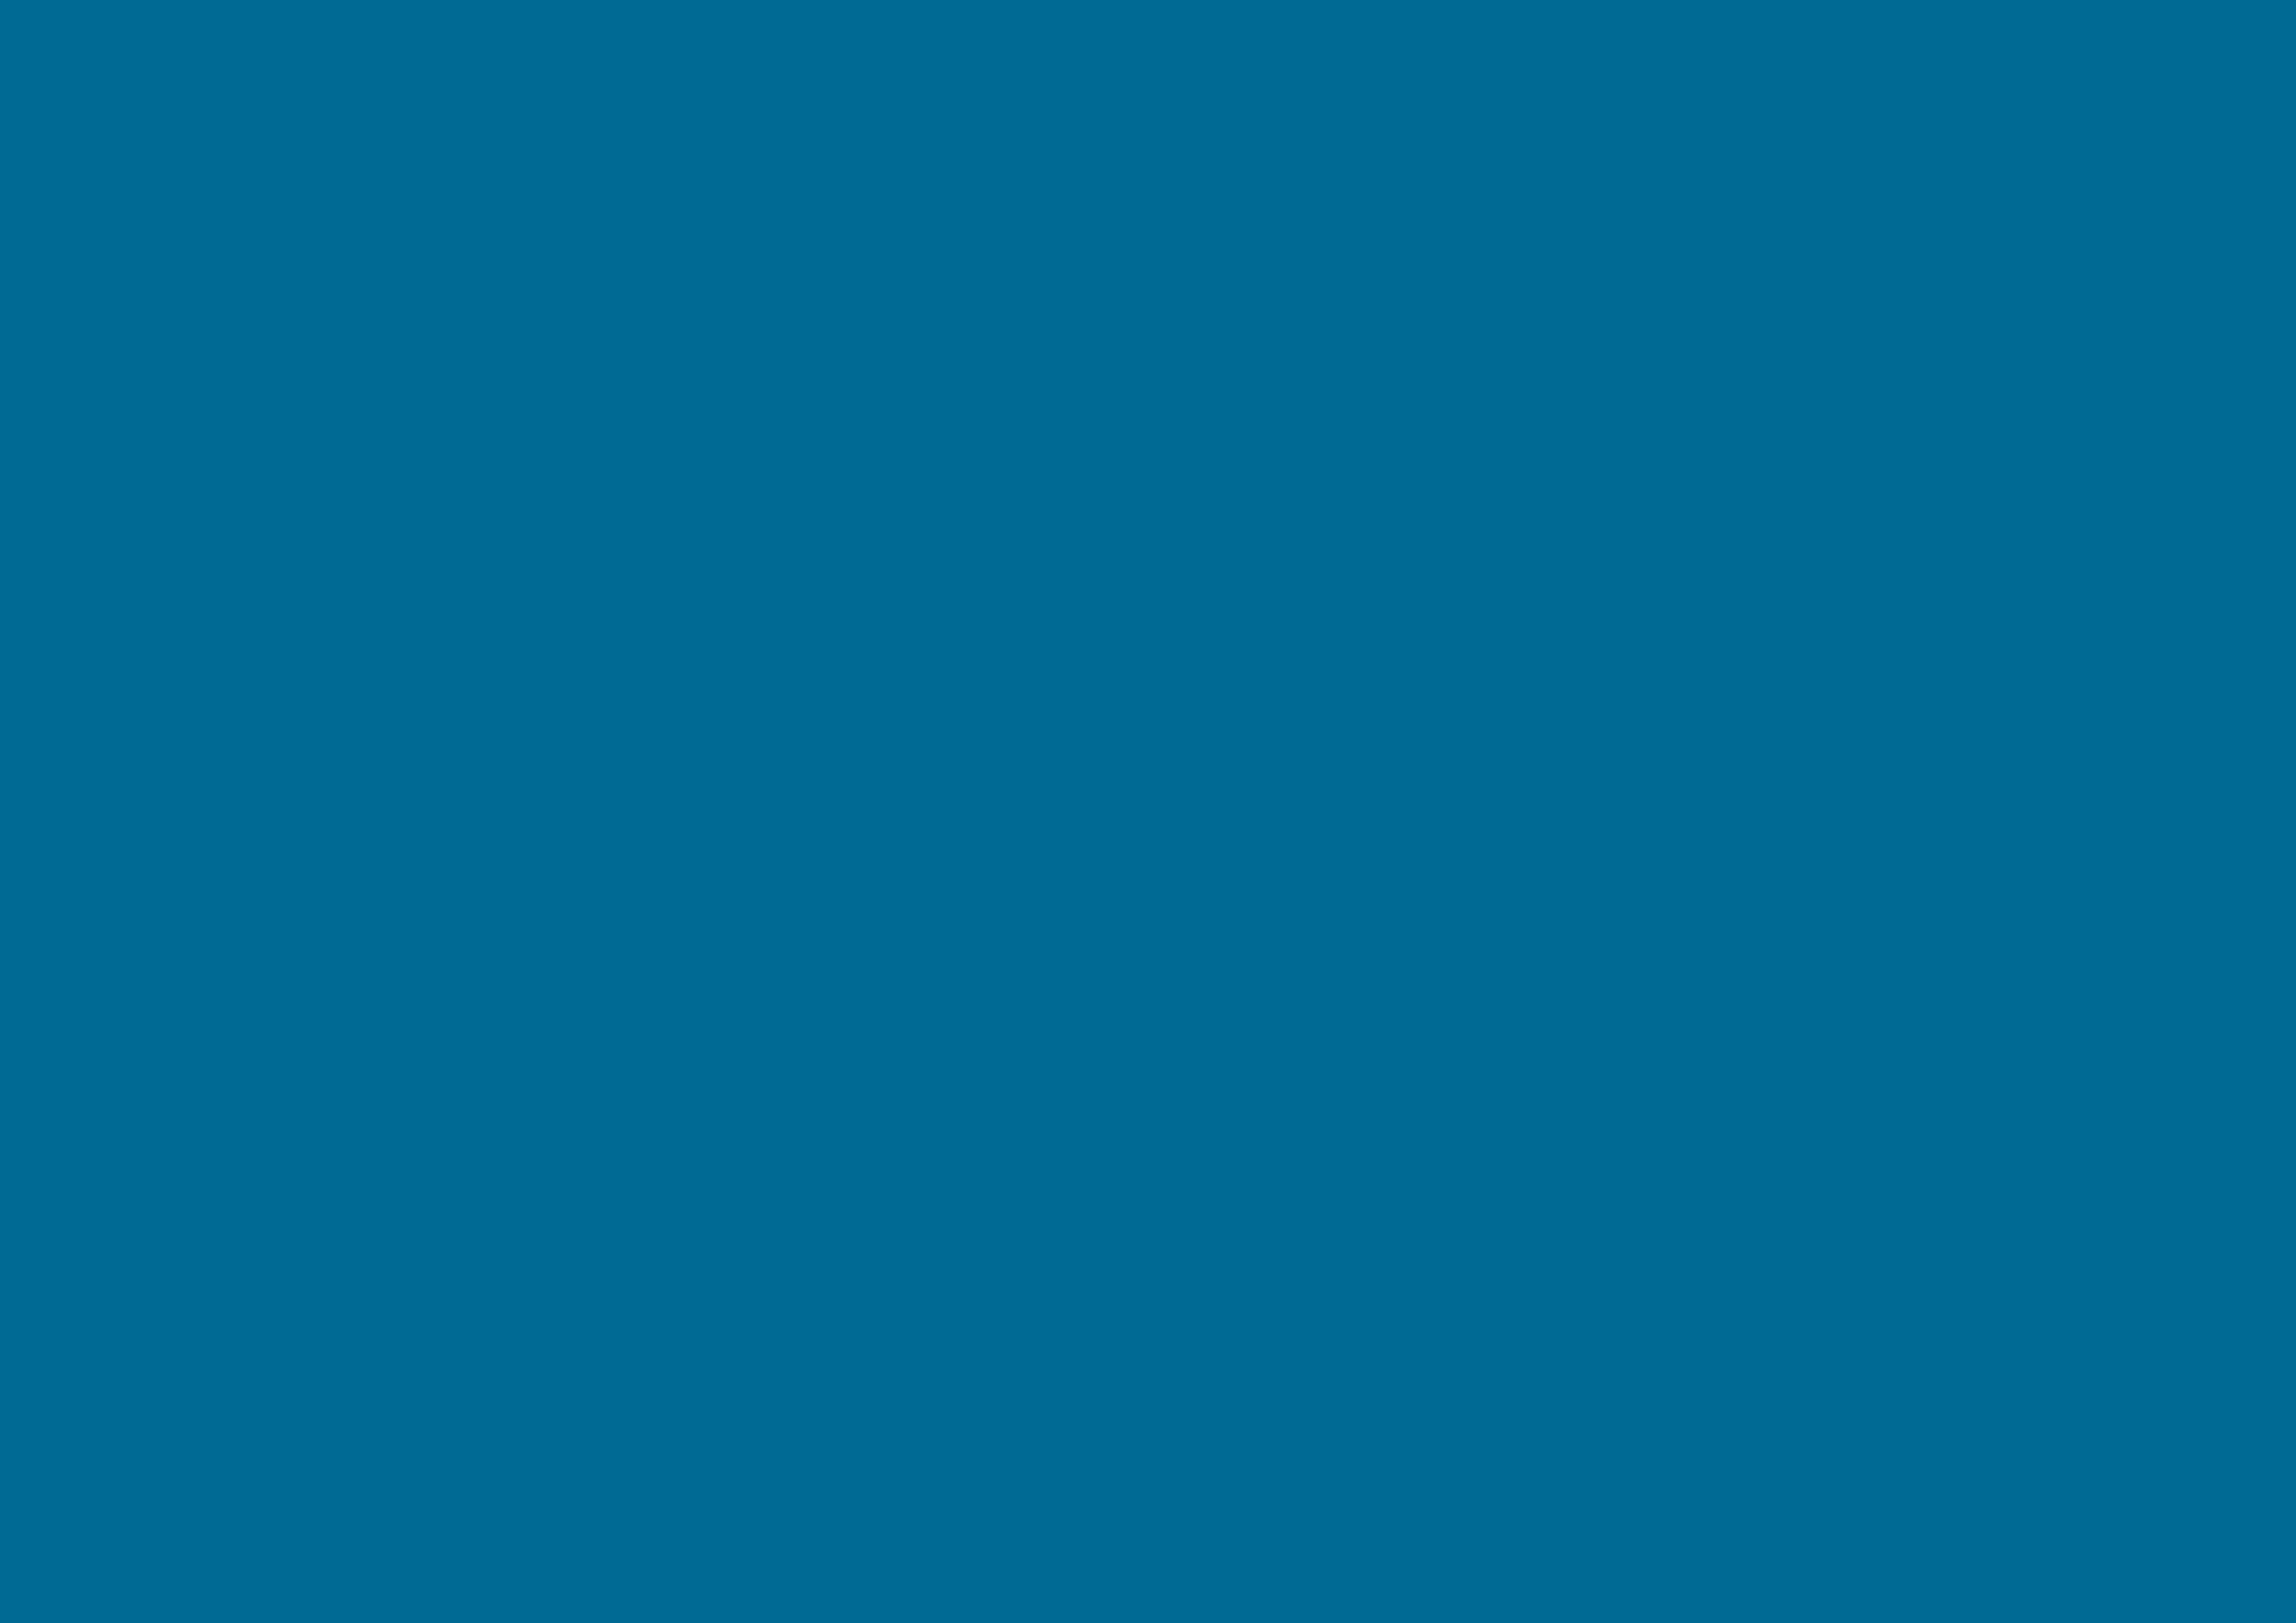 3508x2480 Sea Blue Solid Color Background